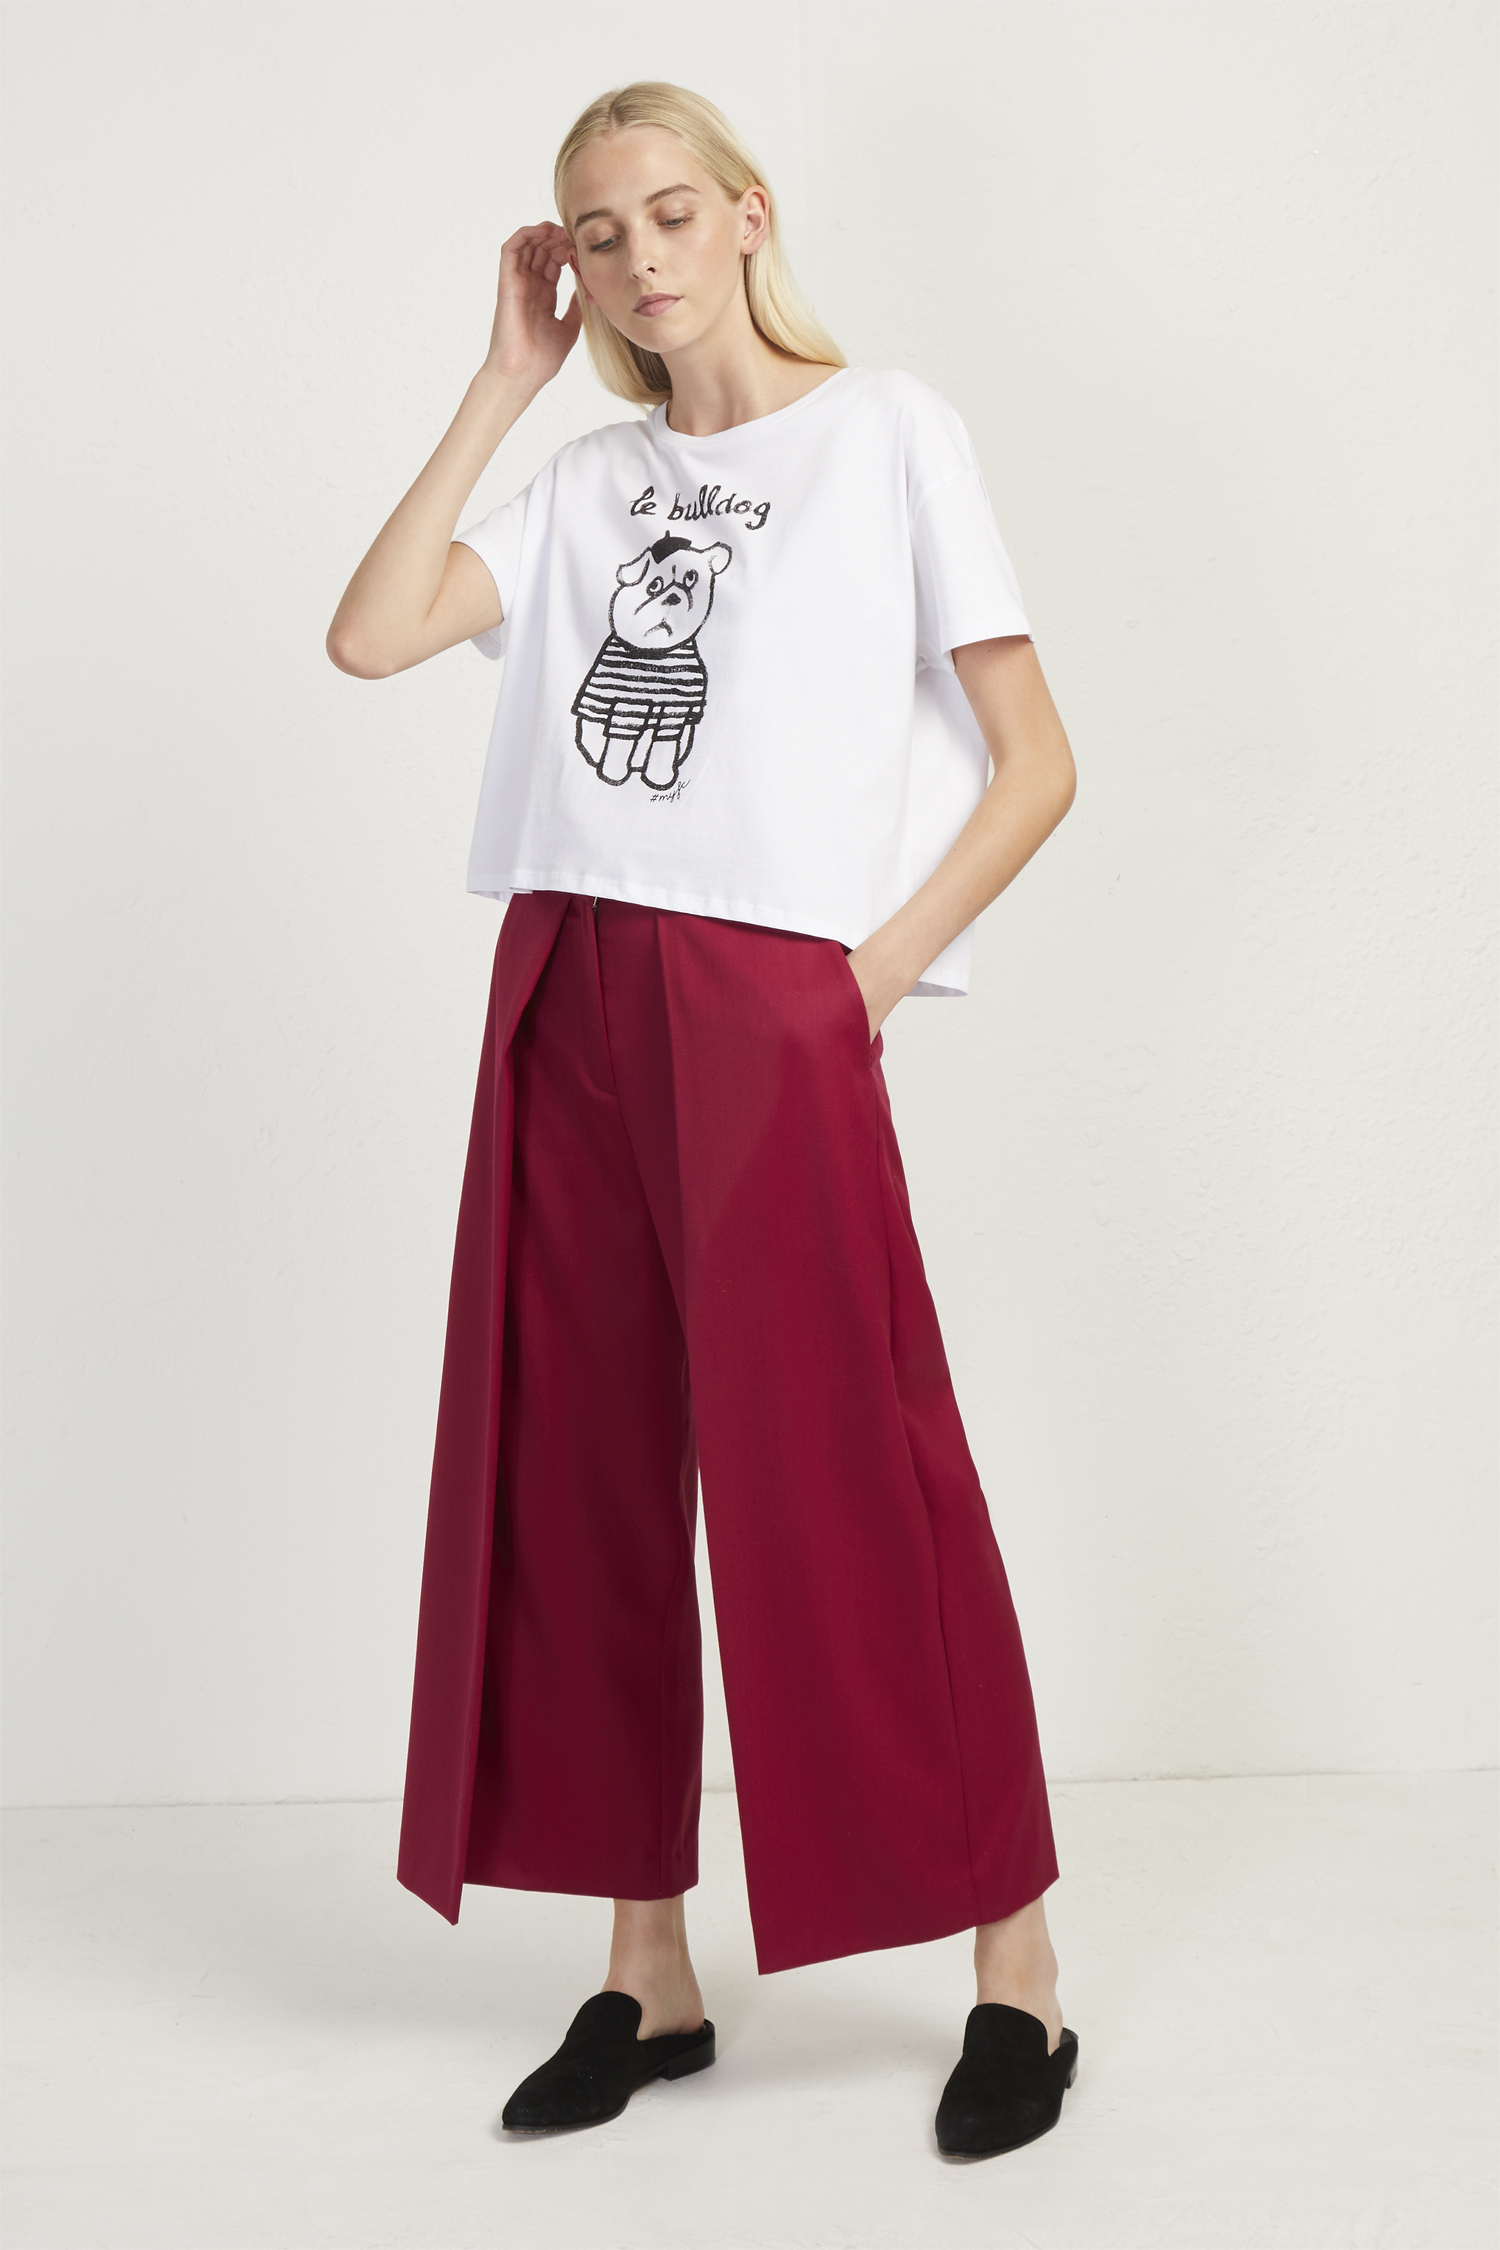 Cedany Tallulah Culottes - baked cherry